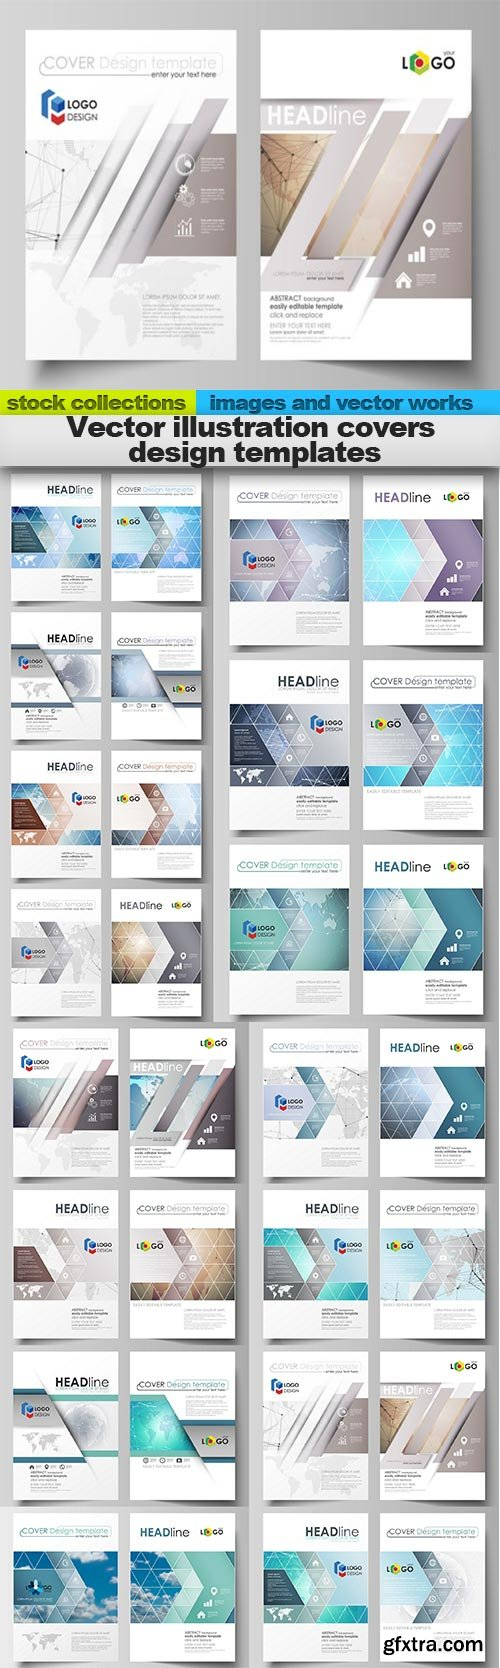 Vector illustration covers design templates, 15 X EPS